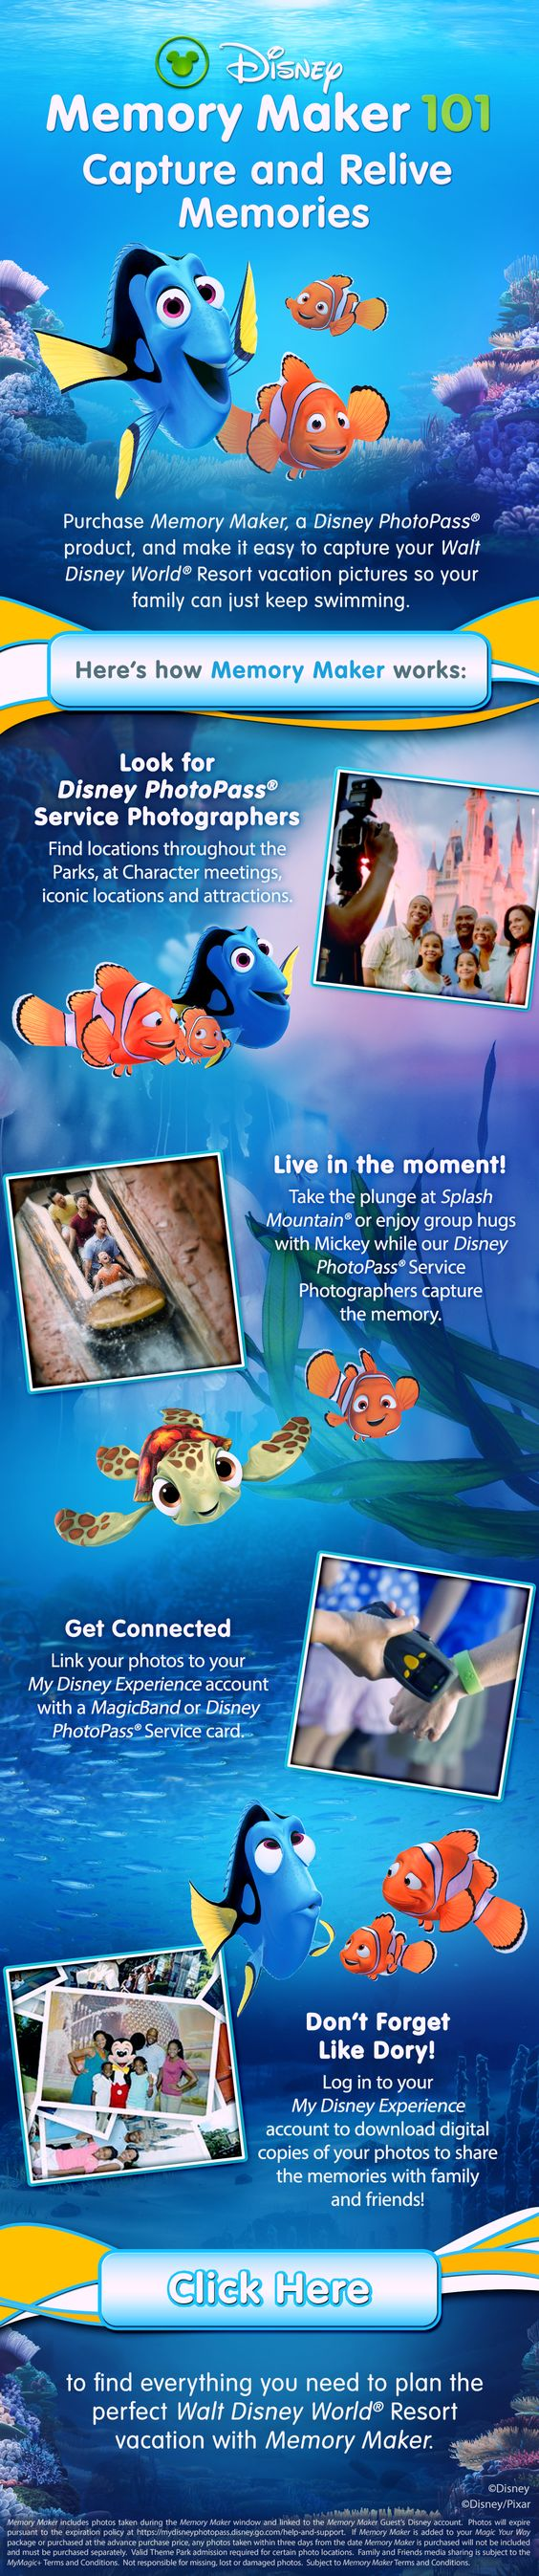 Get all the photos of everyone in your travel party taken by our Disney PhotoPass photographers at hundreds of locations throughout Walt Disney World Resort with Memory Maker! - - Contact me for a free quote on your Disney travel package - charla@madhatteradv.com